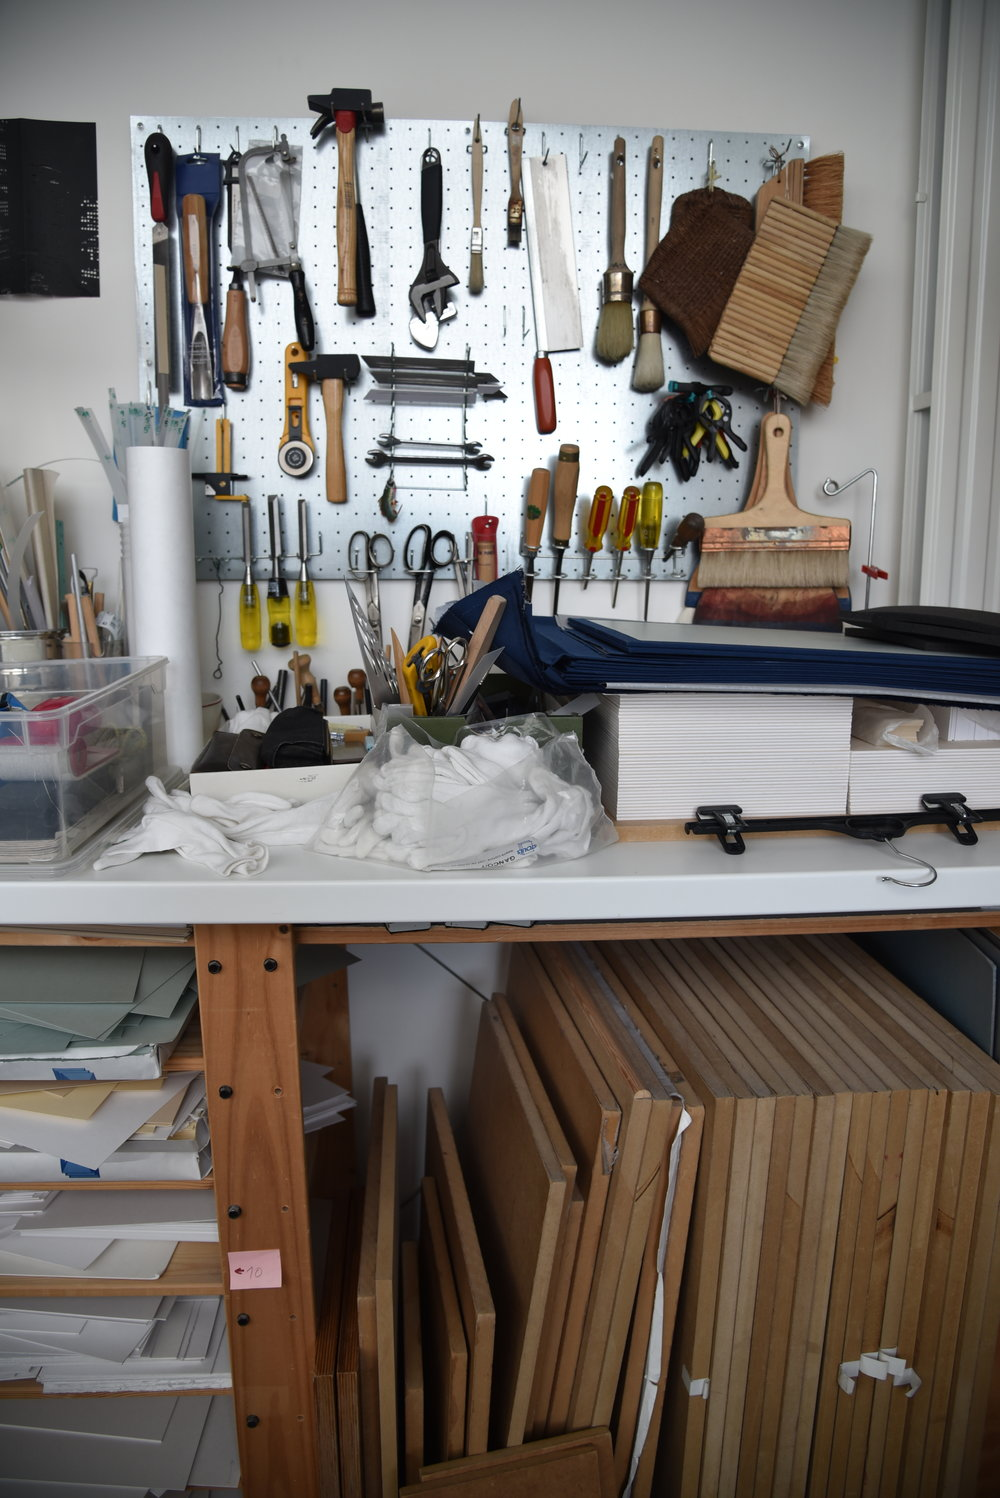 Laurel Parker bookbinding studio